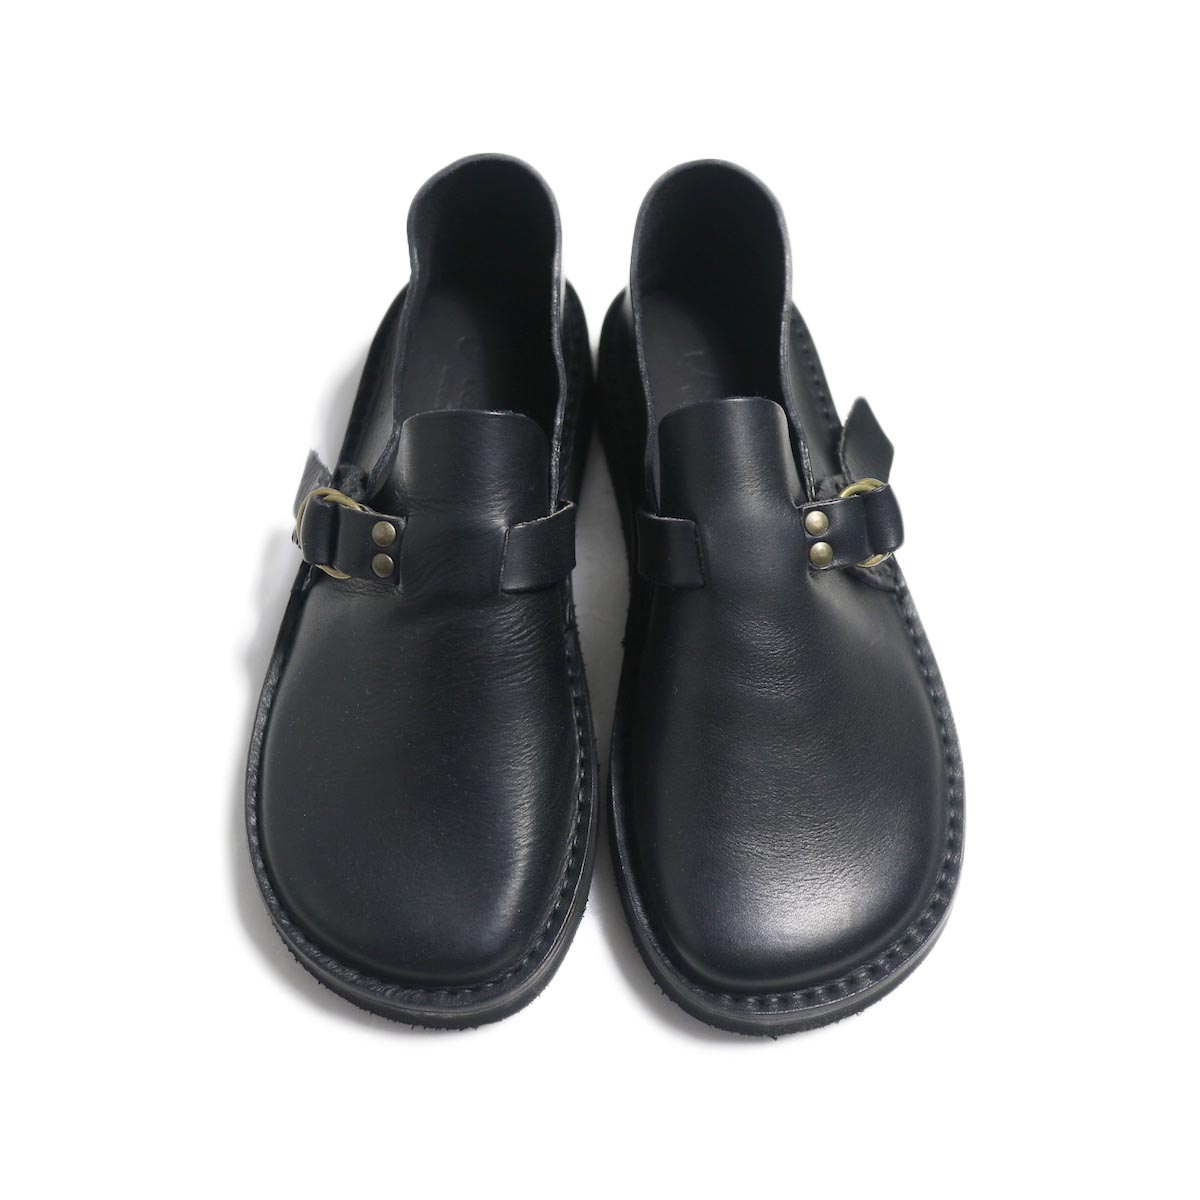 Fracap / R007 Leather Shoes -Black 正面